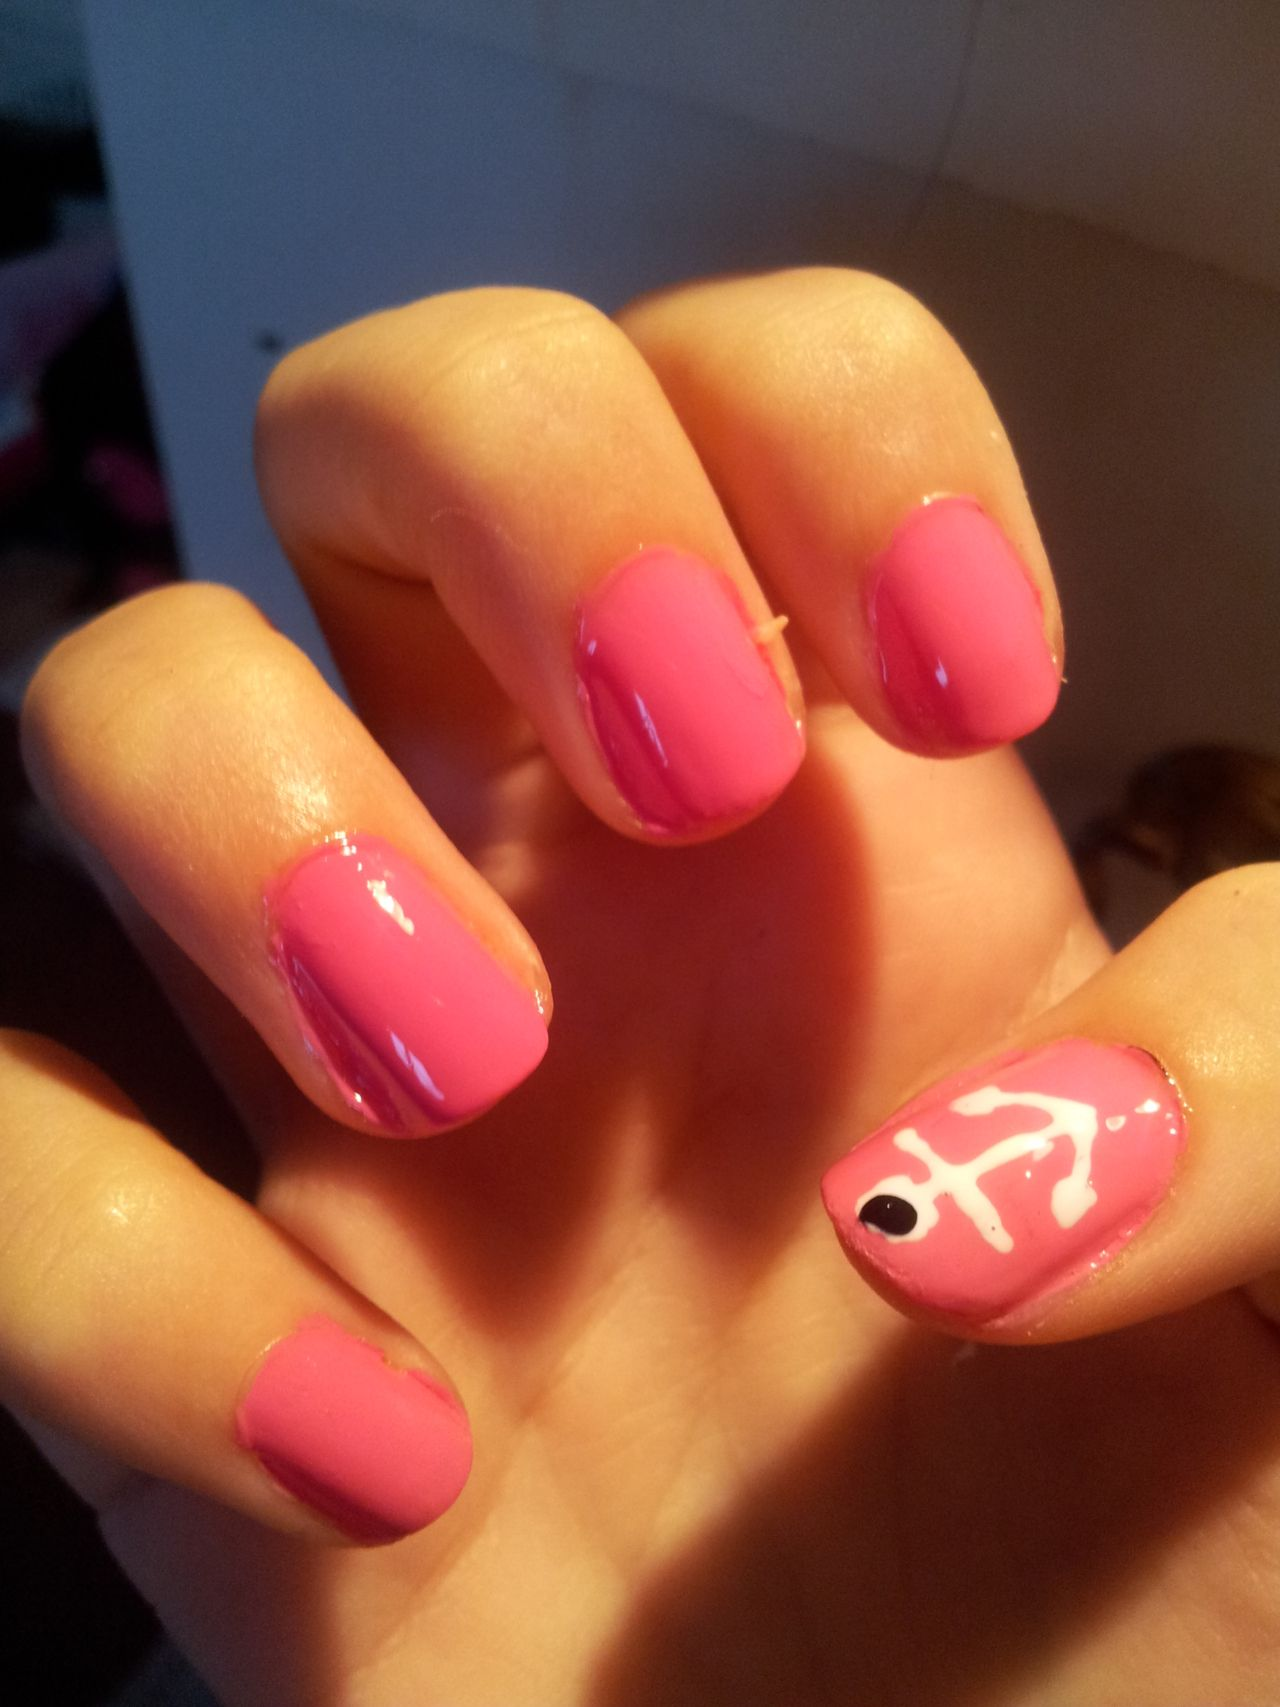 sooo want to paint my nails like this <3